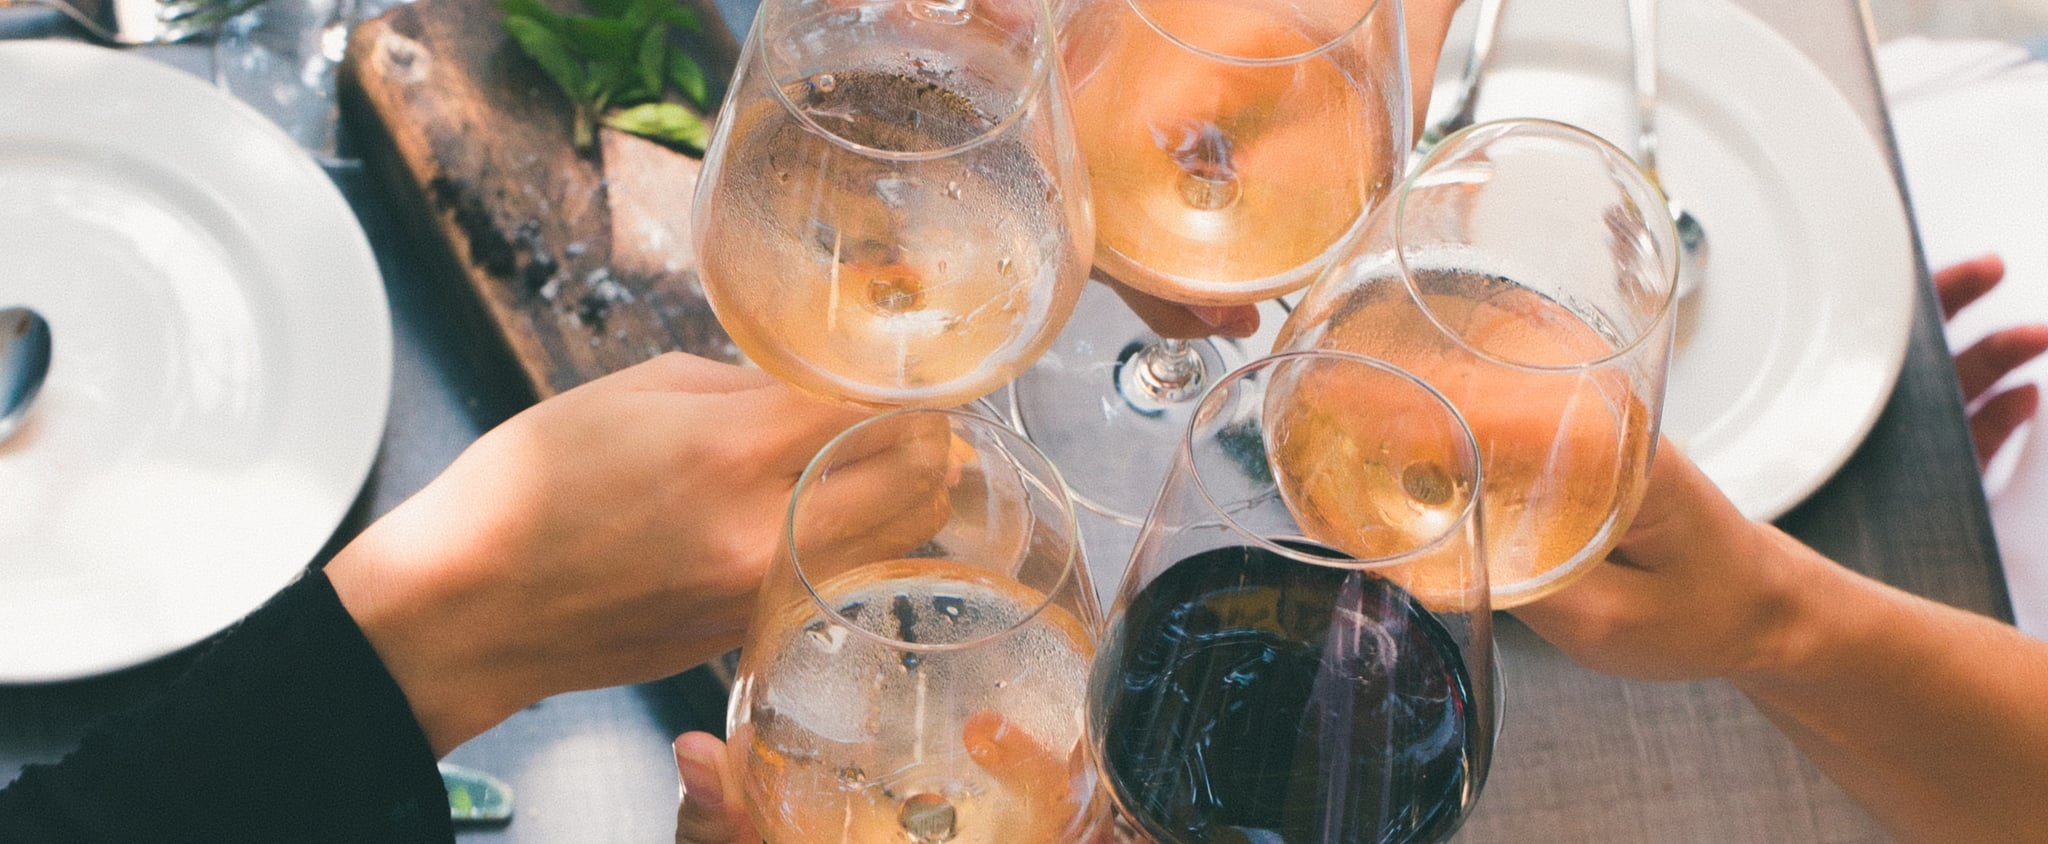 Can You Drink Wine on a Low-Carb Diet?